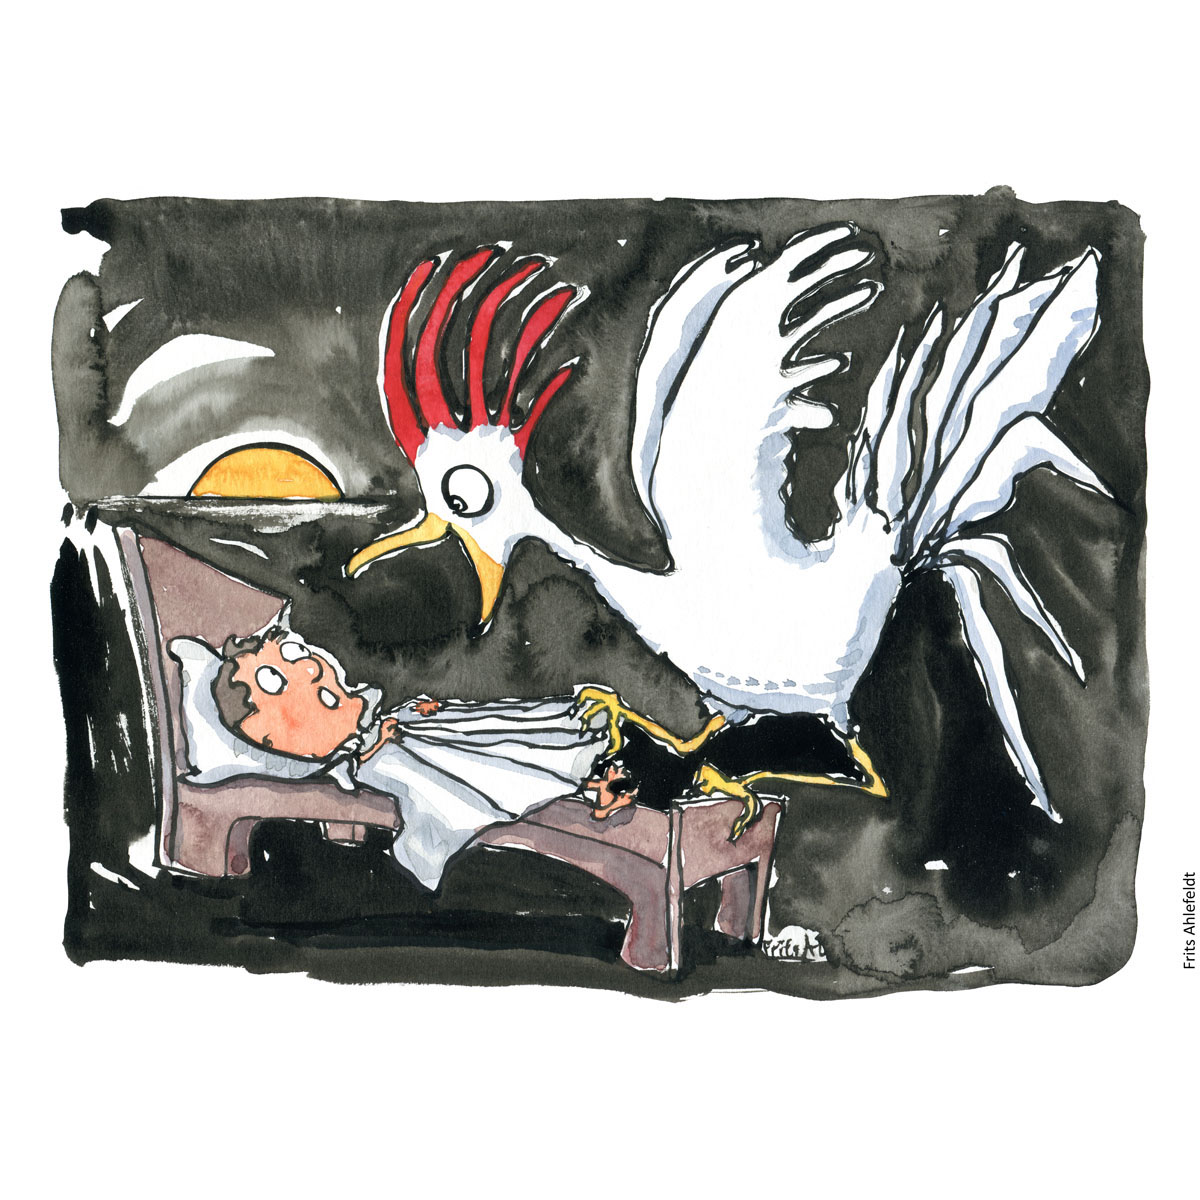 Drawing of a roaster on the end of a bed and the sun coming up. Morning. Handmade color illustration by Frits Ahlefeldt